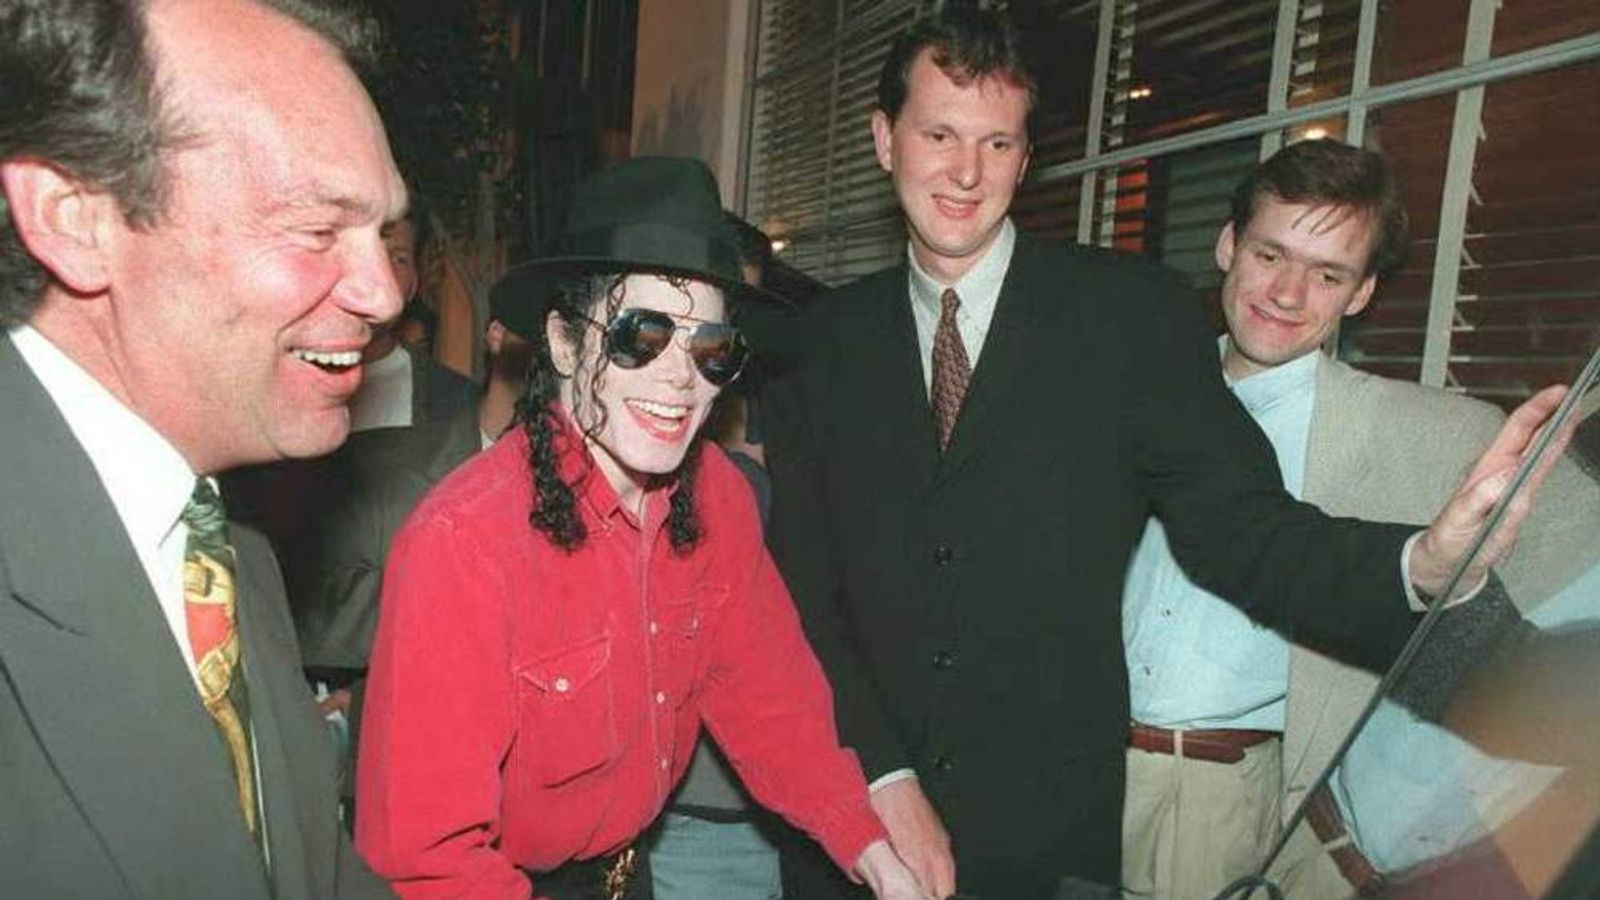 Nothing screams 1995 like Michael Jackson trying out a PlayStation.